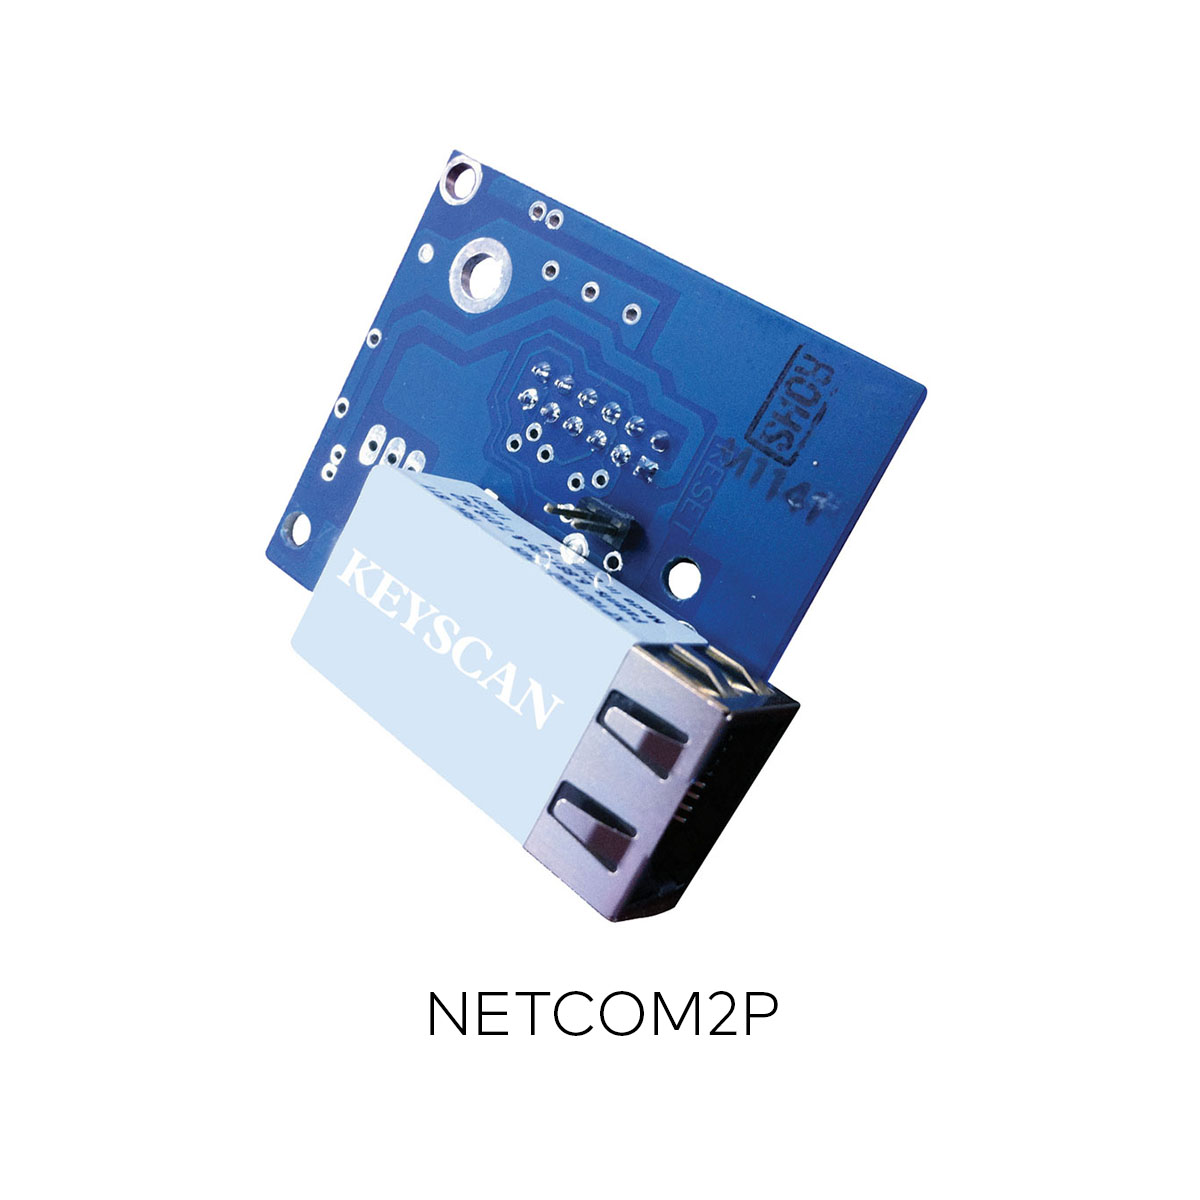 Peripheral Products - Keyscan Controllers | dormakaba on contactor wiring, ac drive wiring, motherboard wiring, arduino uno wiring, switch wiring, terminal block wiring, control wiring, plc wiring, thermostat wiring, capacitor wiring, transducer wiring,